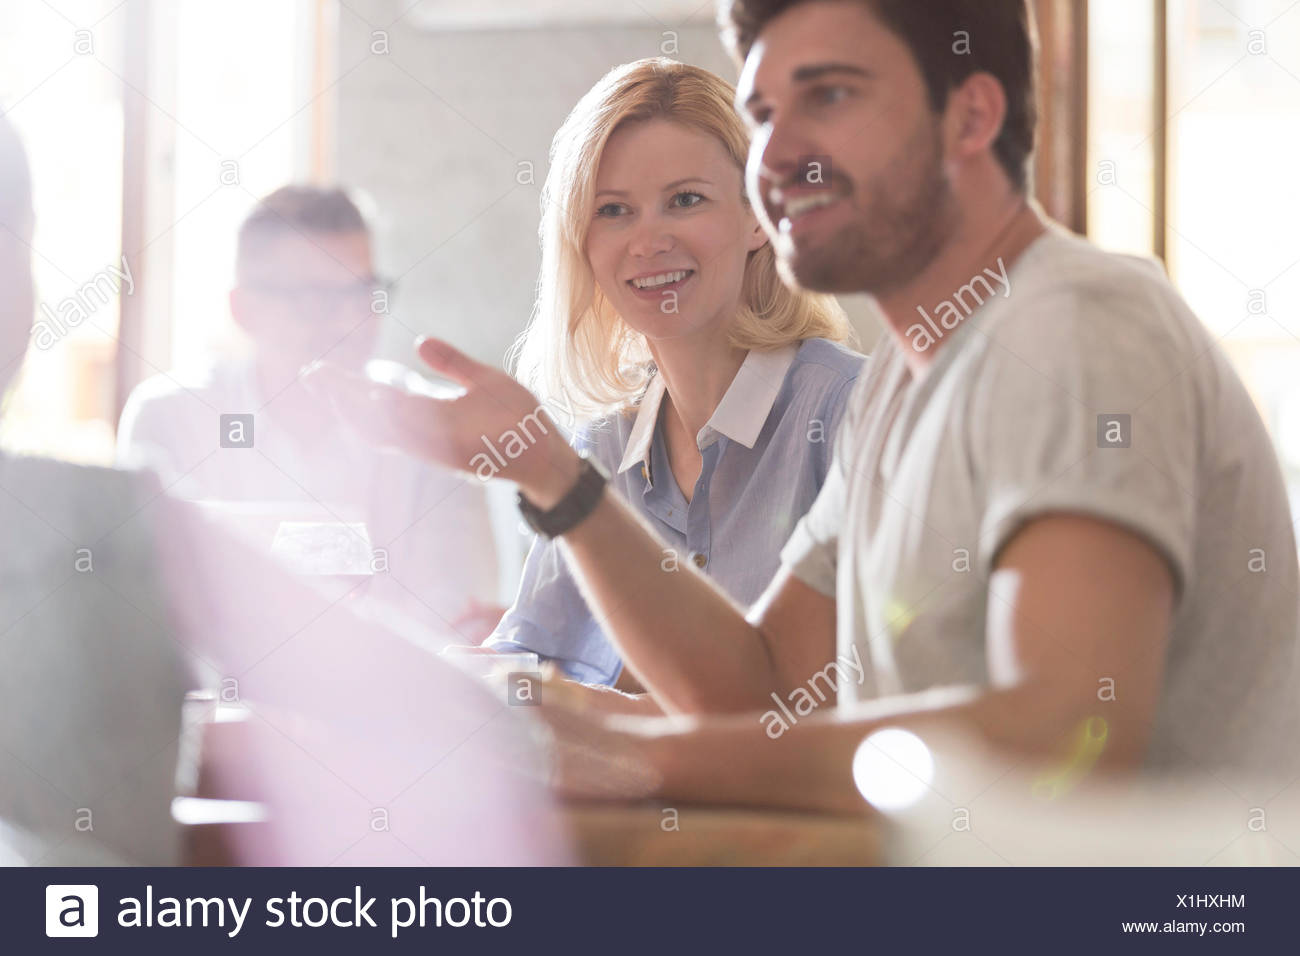 Smiling parents talking and gesturing to daughter at cafe - Stock Image